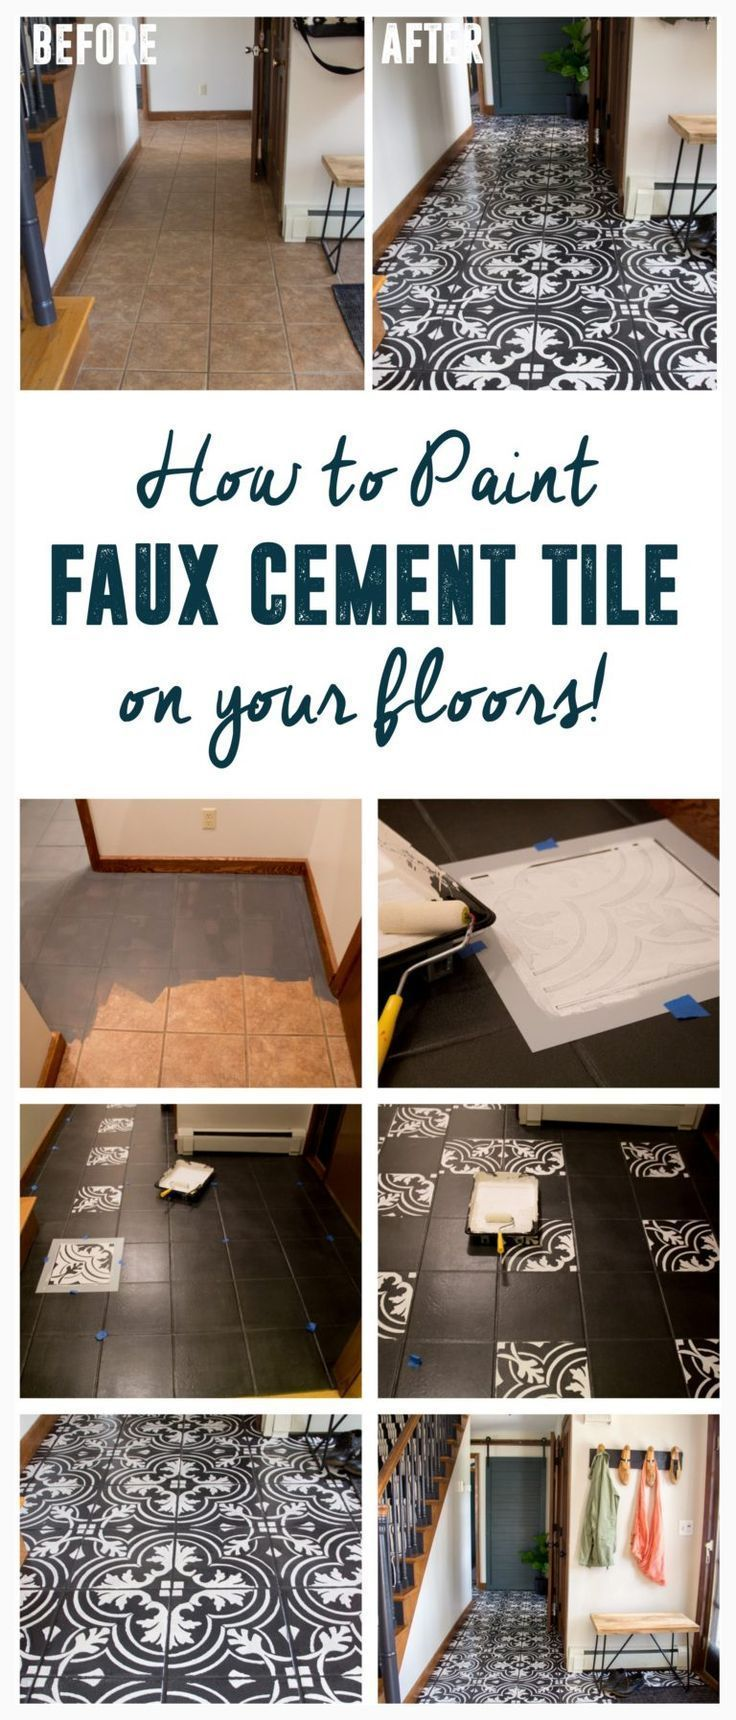 Faux Cement Tile Painted Floors | Bodenfarbe, Bodengestaltung und ...